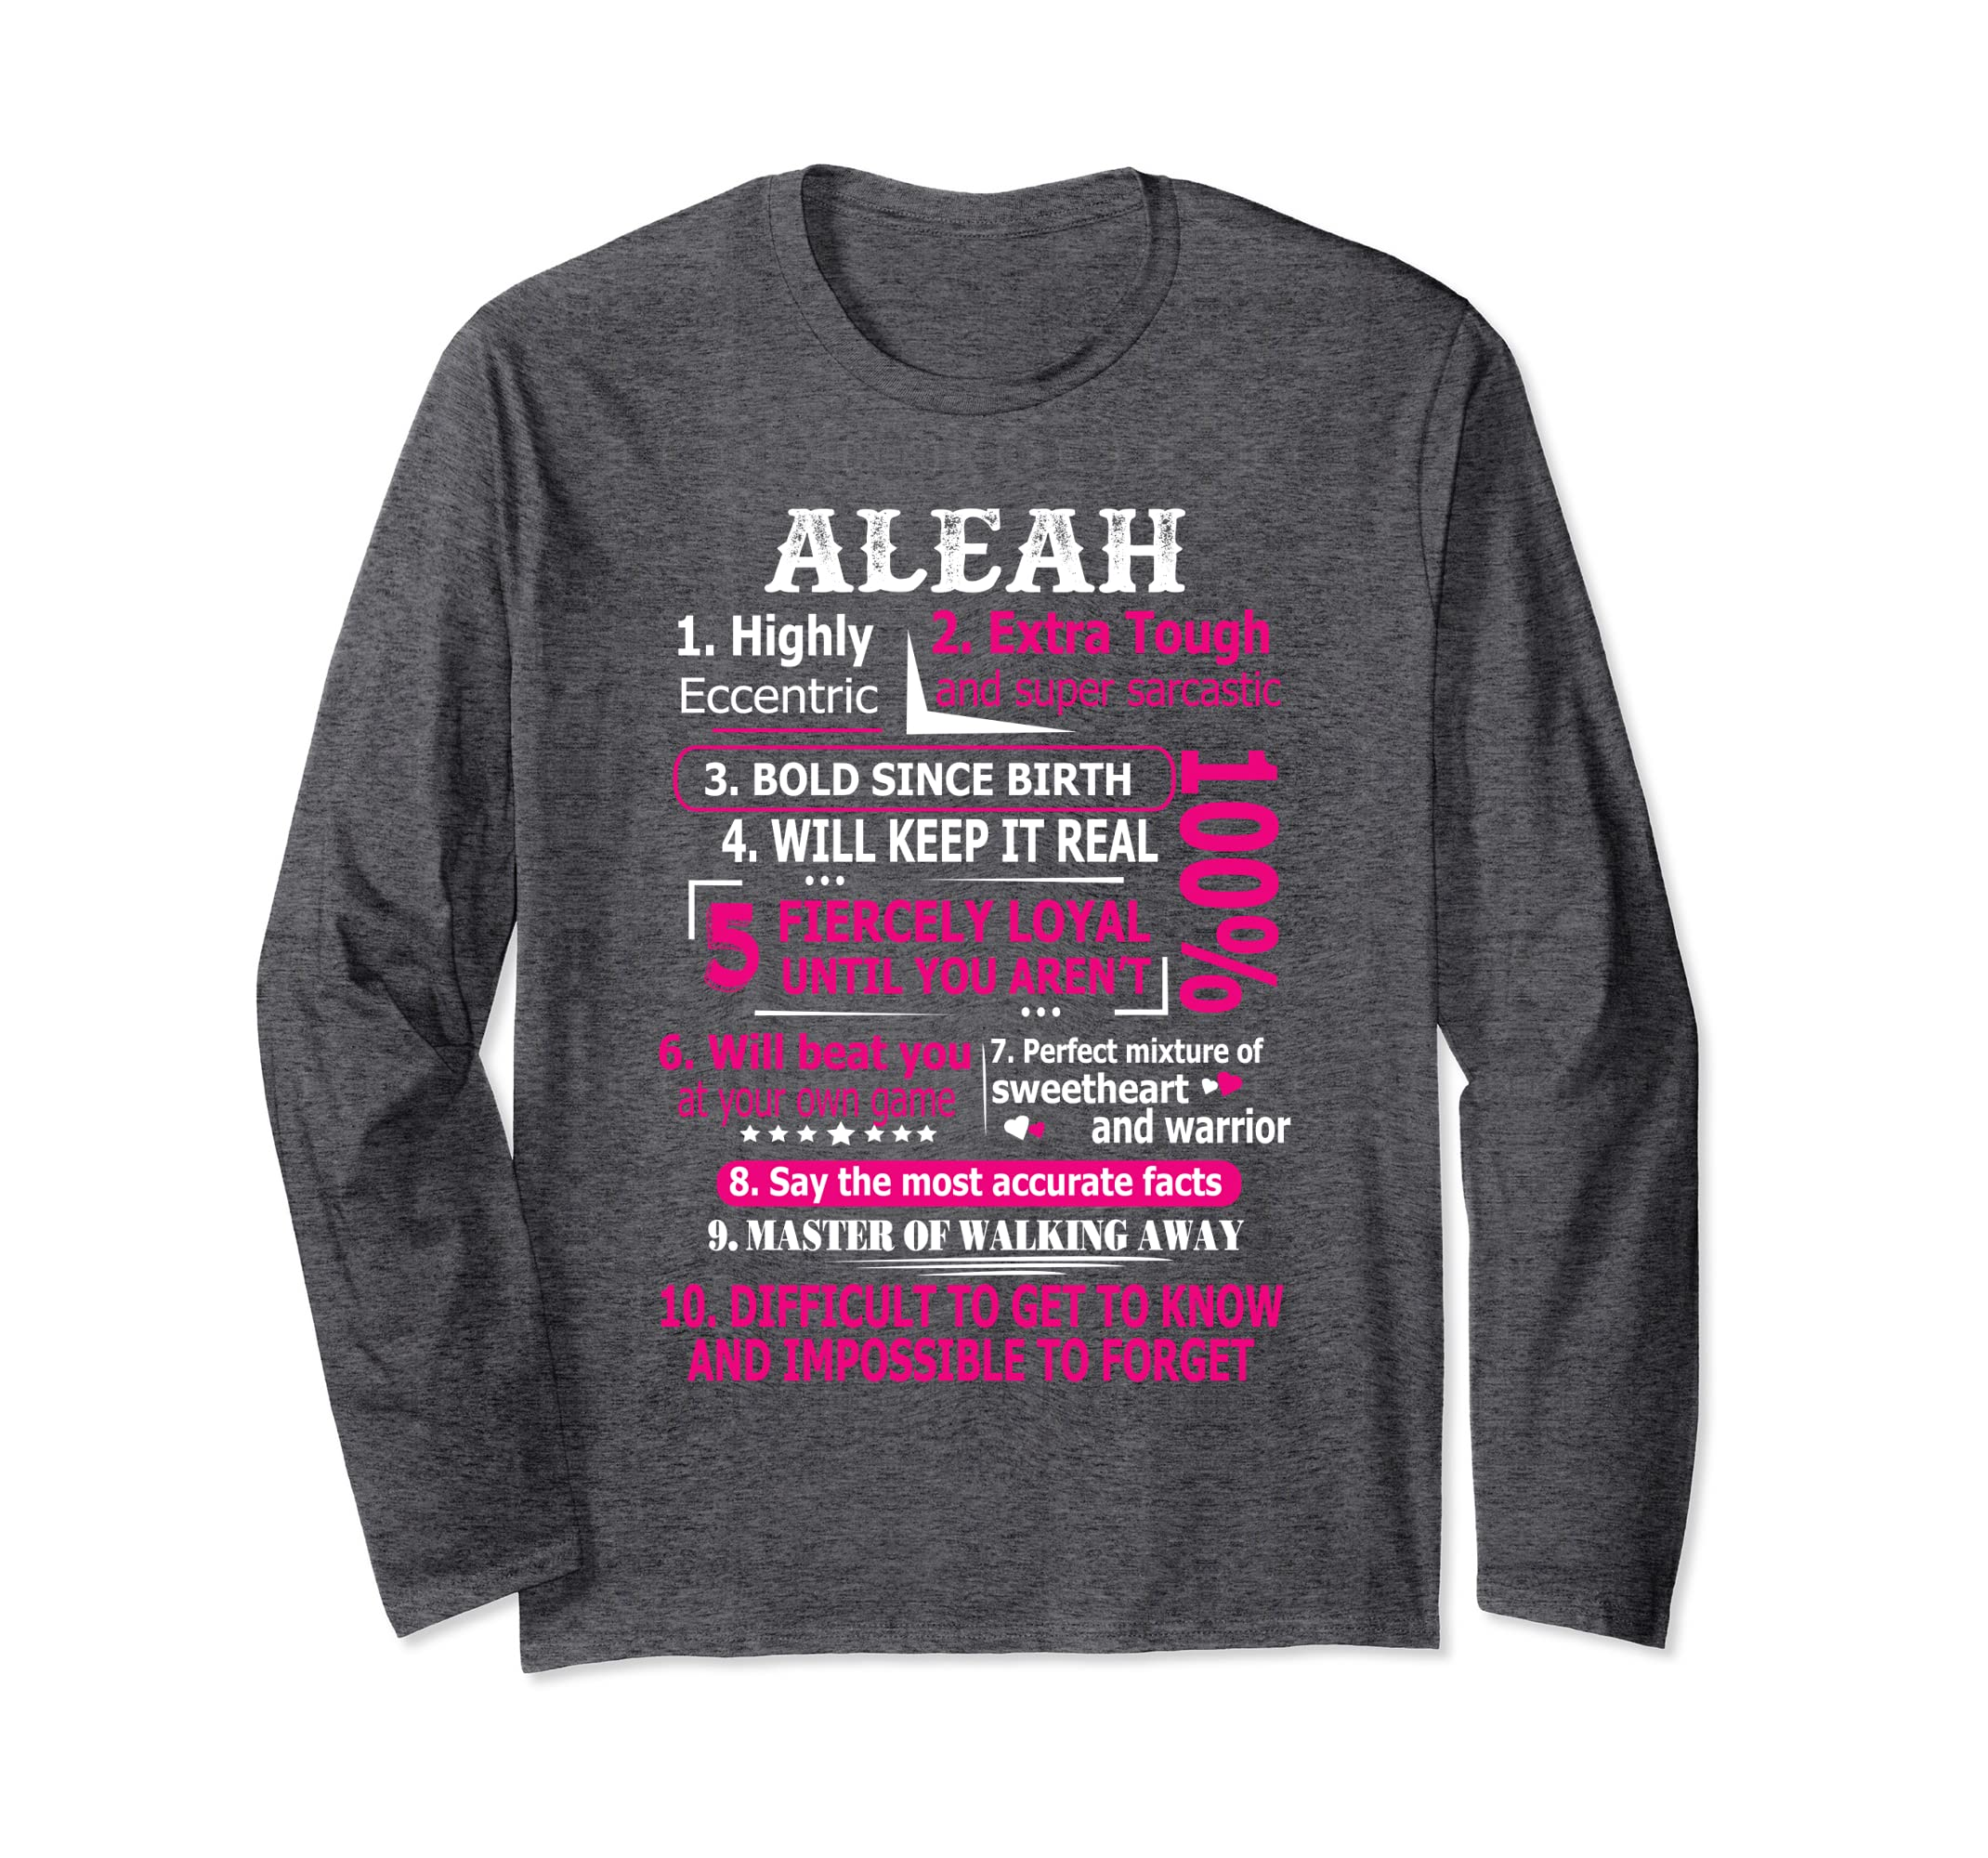 Amazoncom Aleah Highly Eccentric 10 Facts Shirt First Name Tee